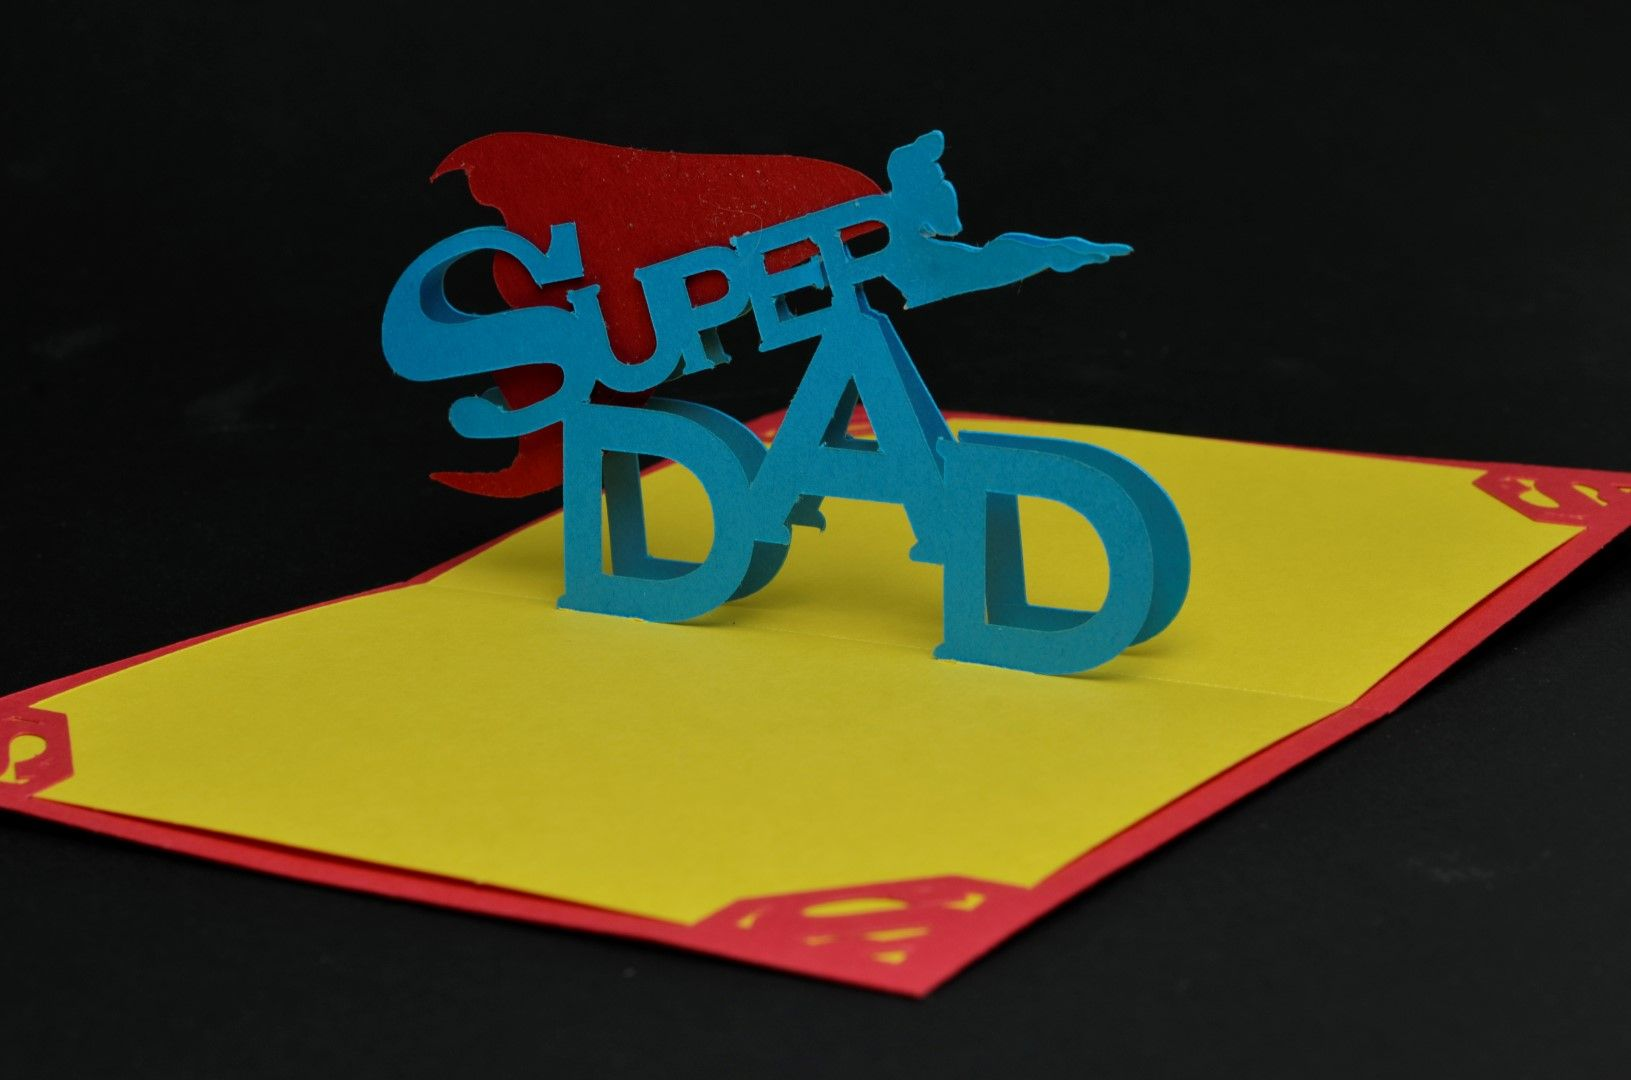 Father S Day Super Dad Pop Up Card Tutorial Creative Pop Up Cards Pop Up Card Templates Pop Up Cards Father S Day Card Template